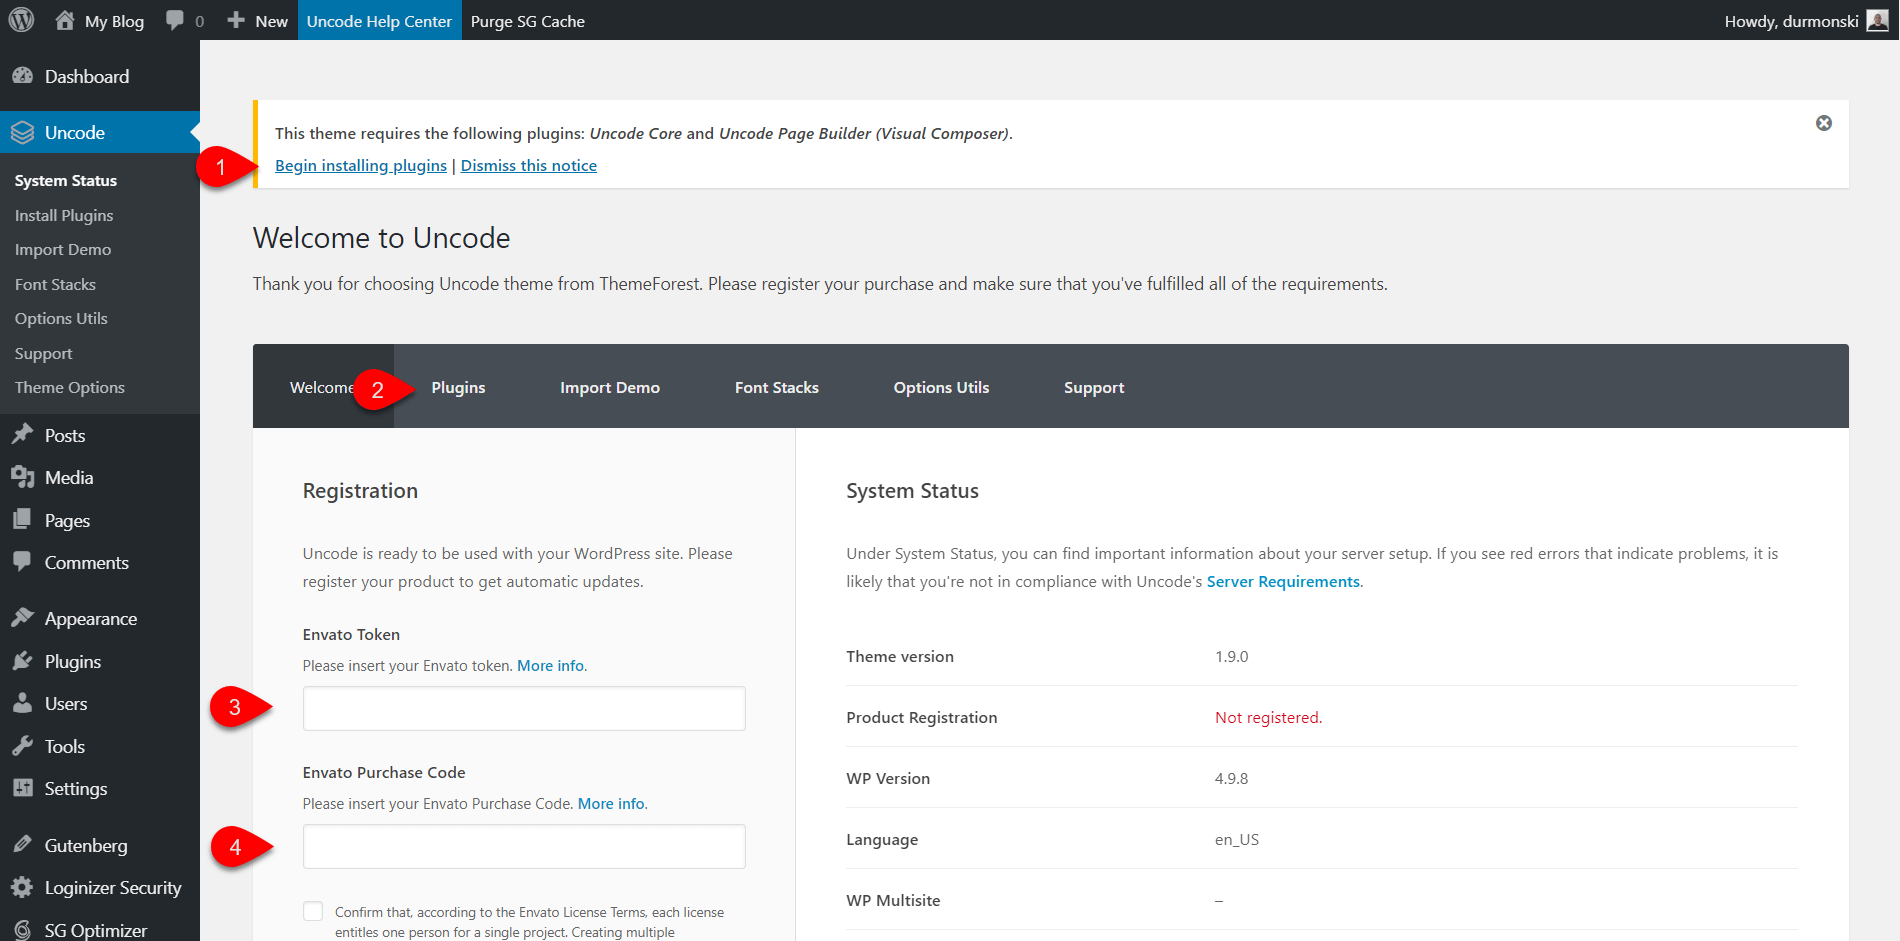 Uncode WordPress Theme Settings